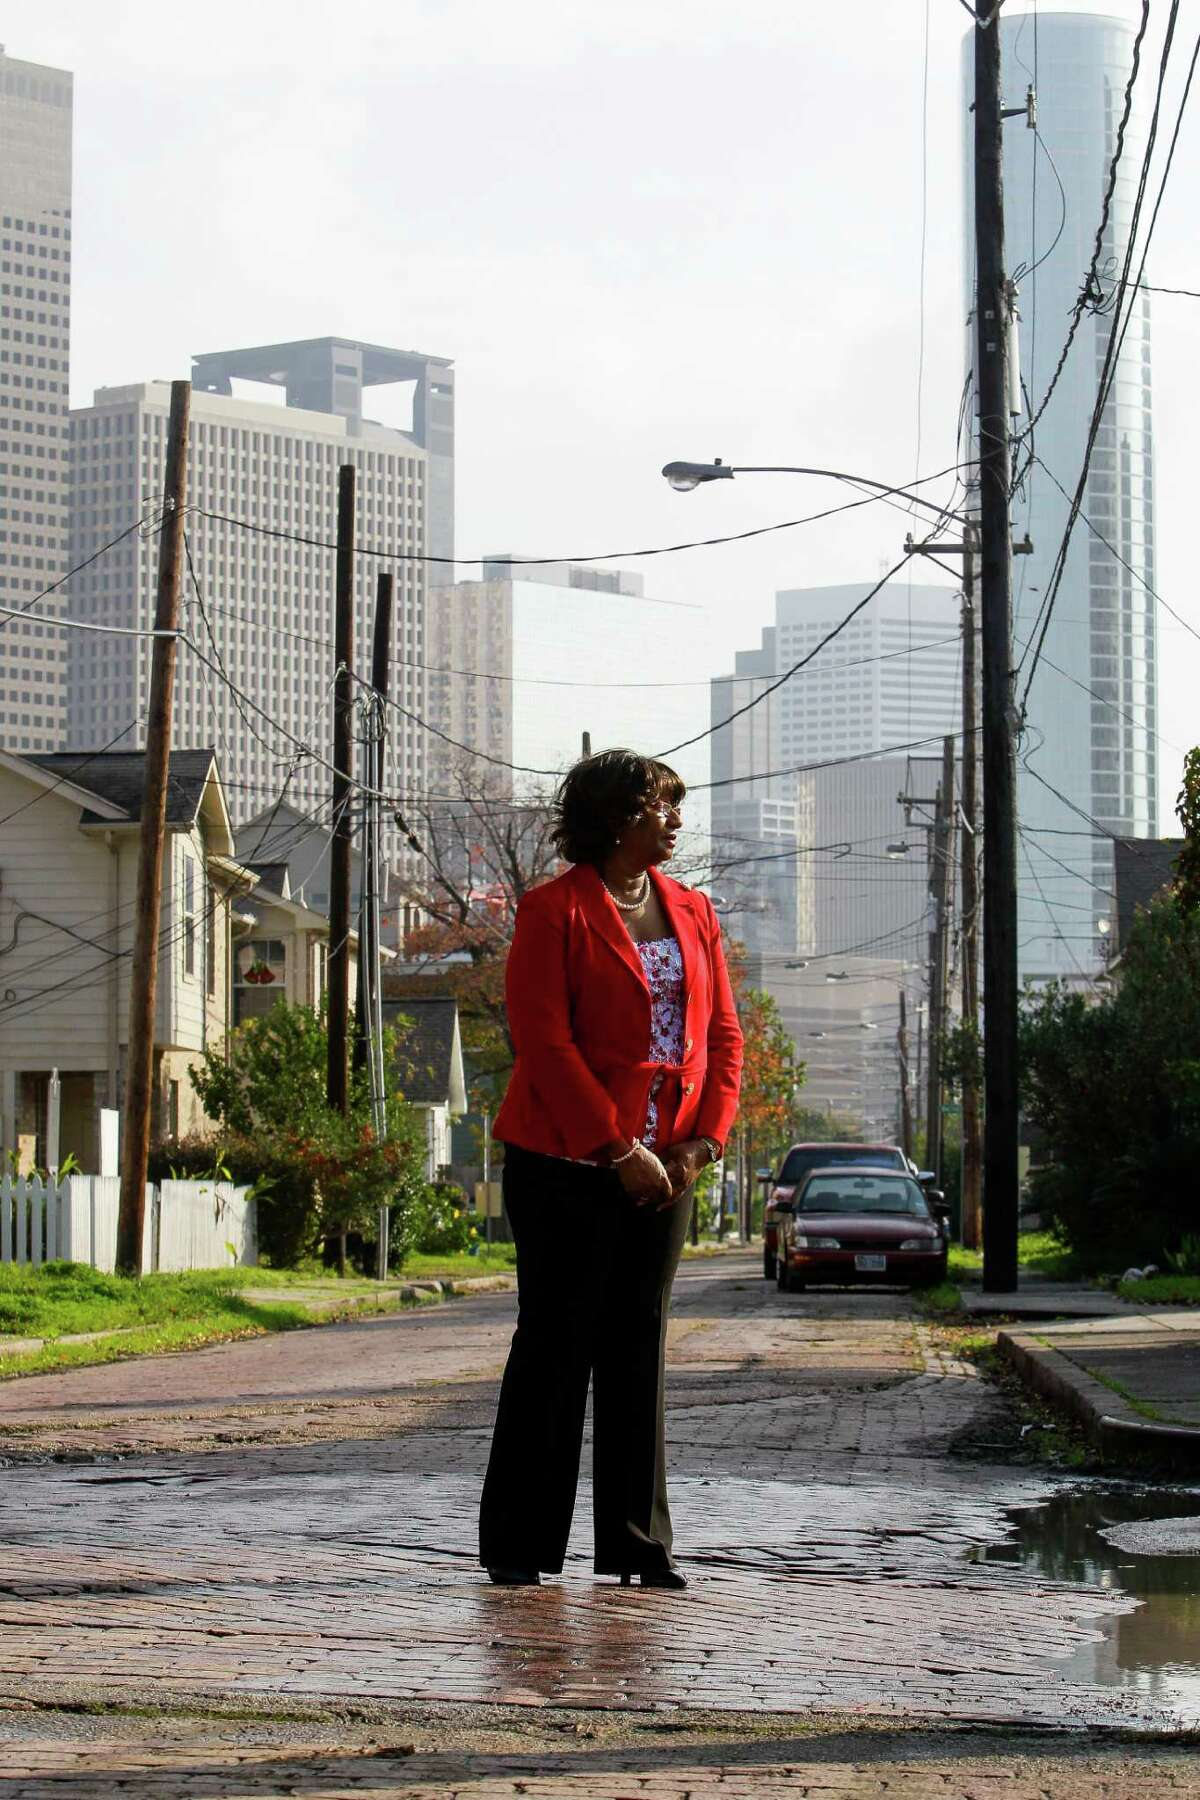 Dorris Ellis Robinson, president of Freedmen's Town Preservation Coalition, says the brick streets were laid by former slaves and have historical and spiritual significance.